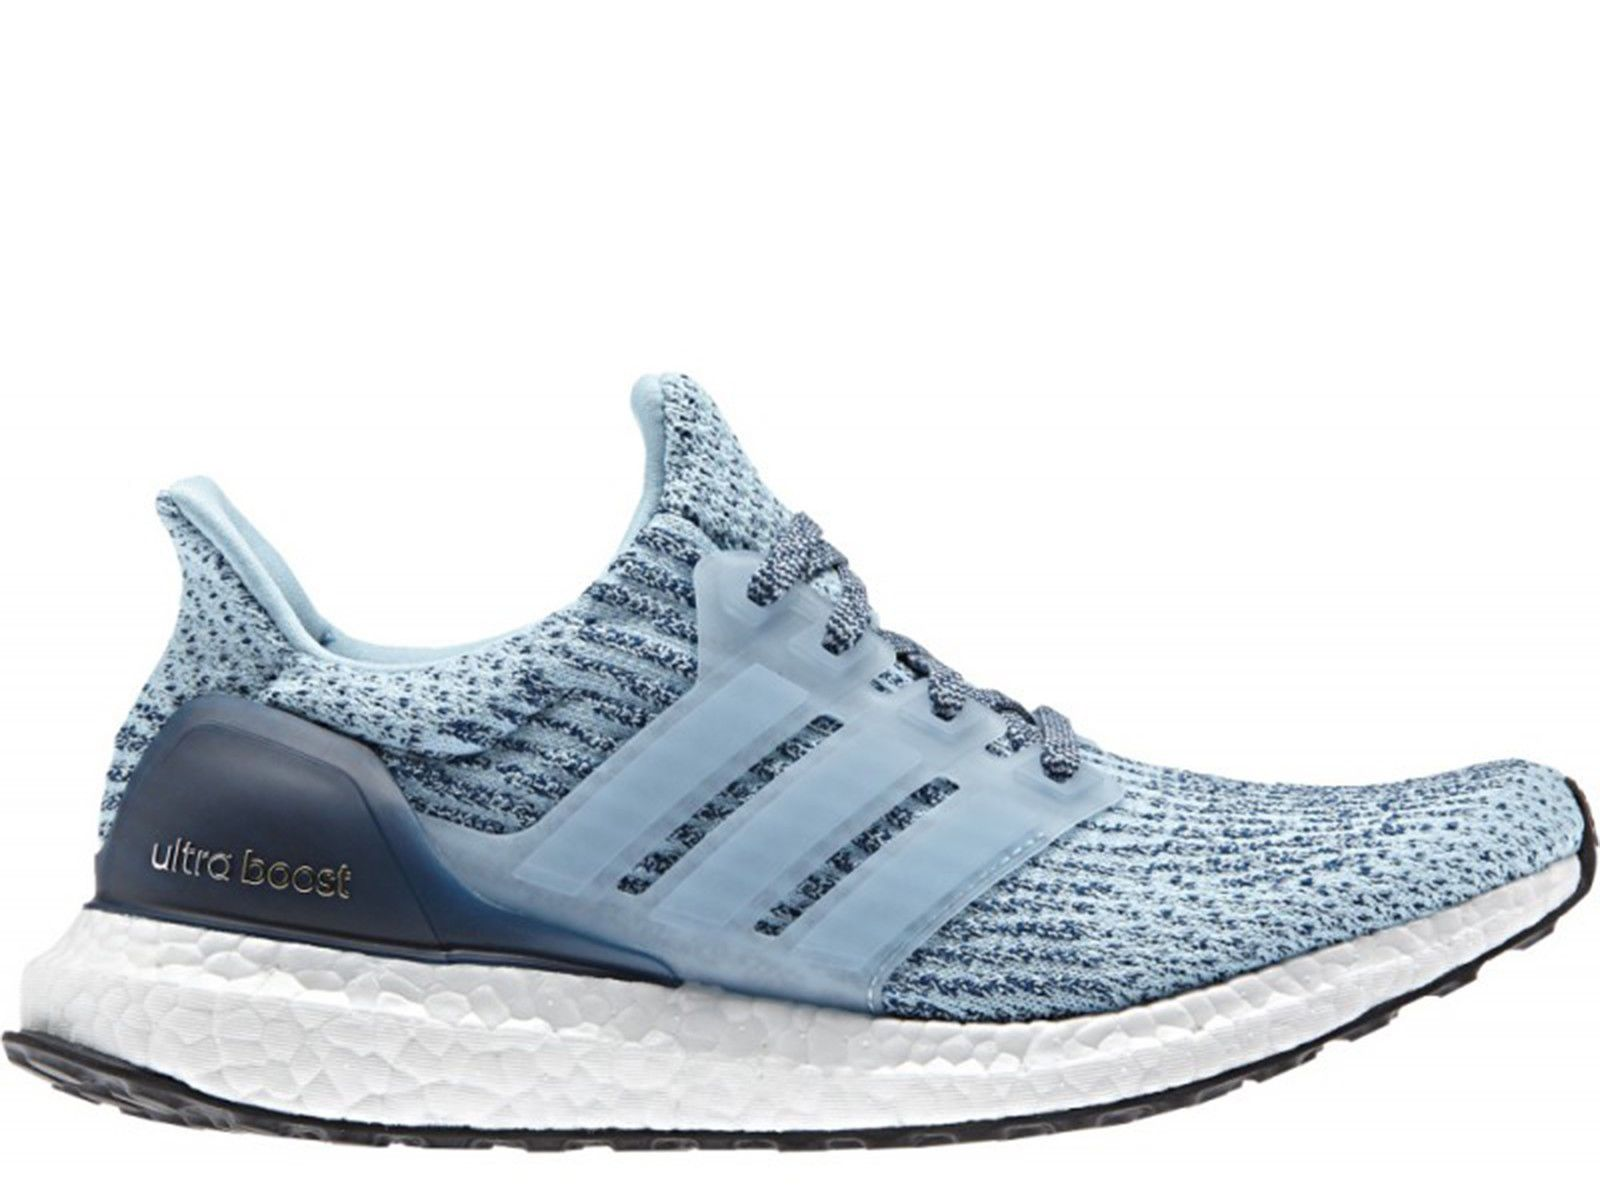 a89ecd7f5f8 Brand New adidas UltraBoost Women s Athletic Fashion Sneakers  S82055